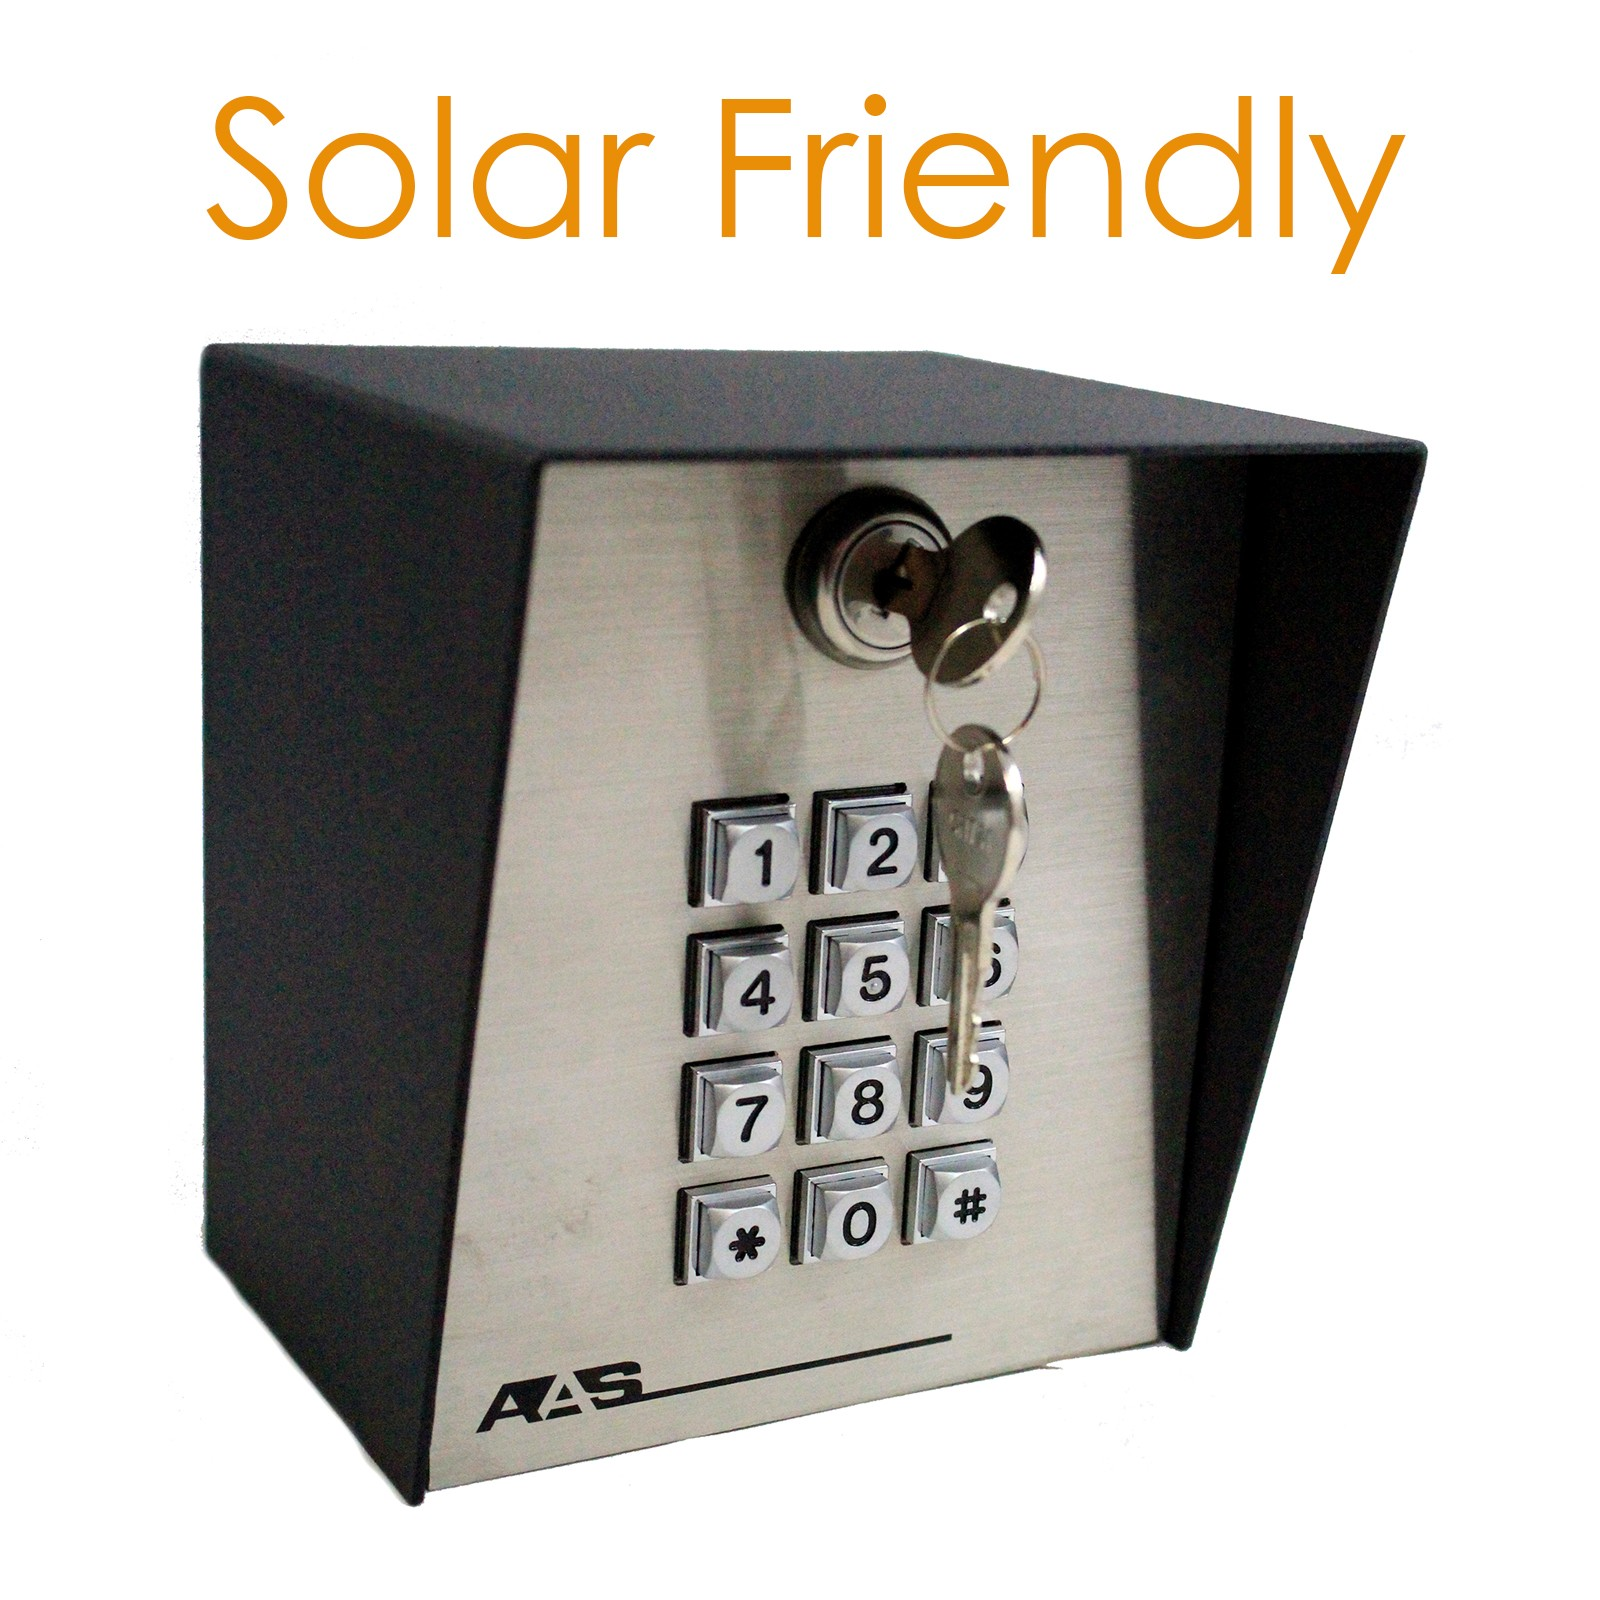 Nice Apollo 928 Solar Friendly Keypad Commercial Aas